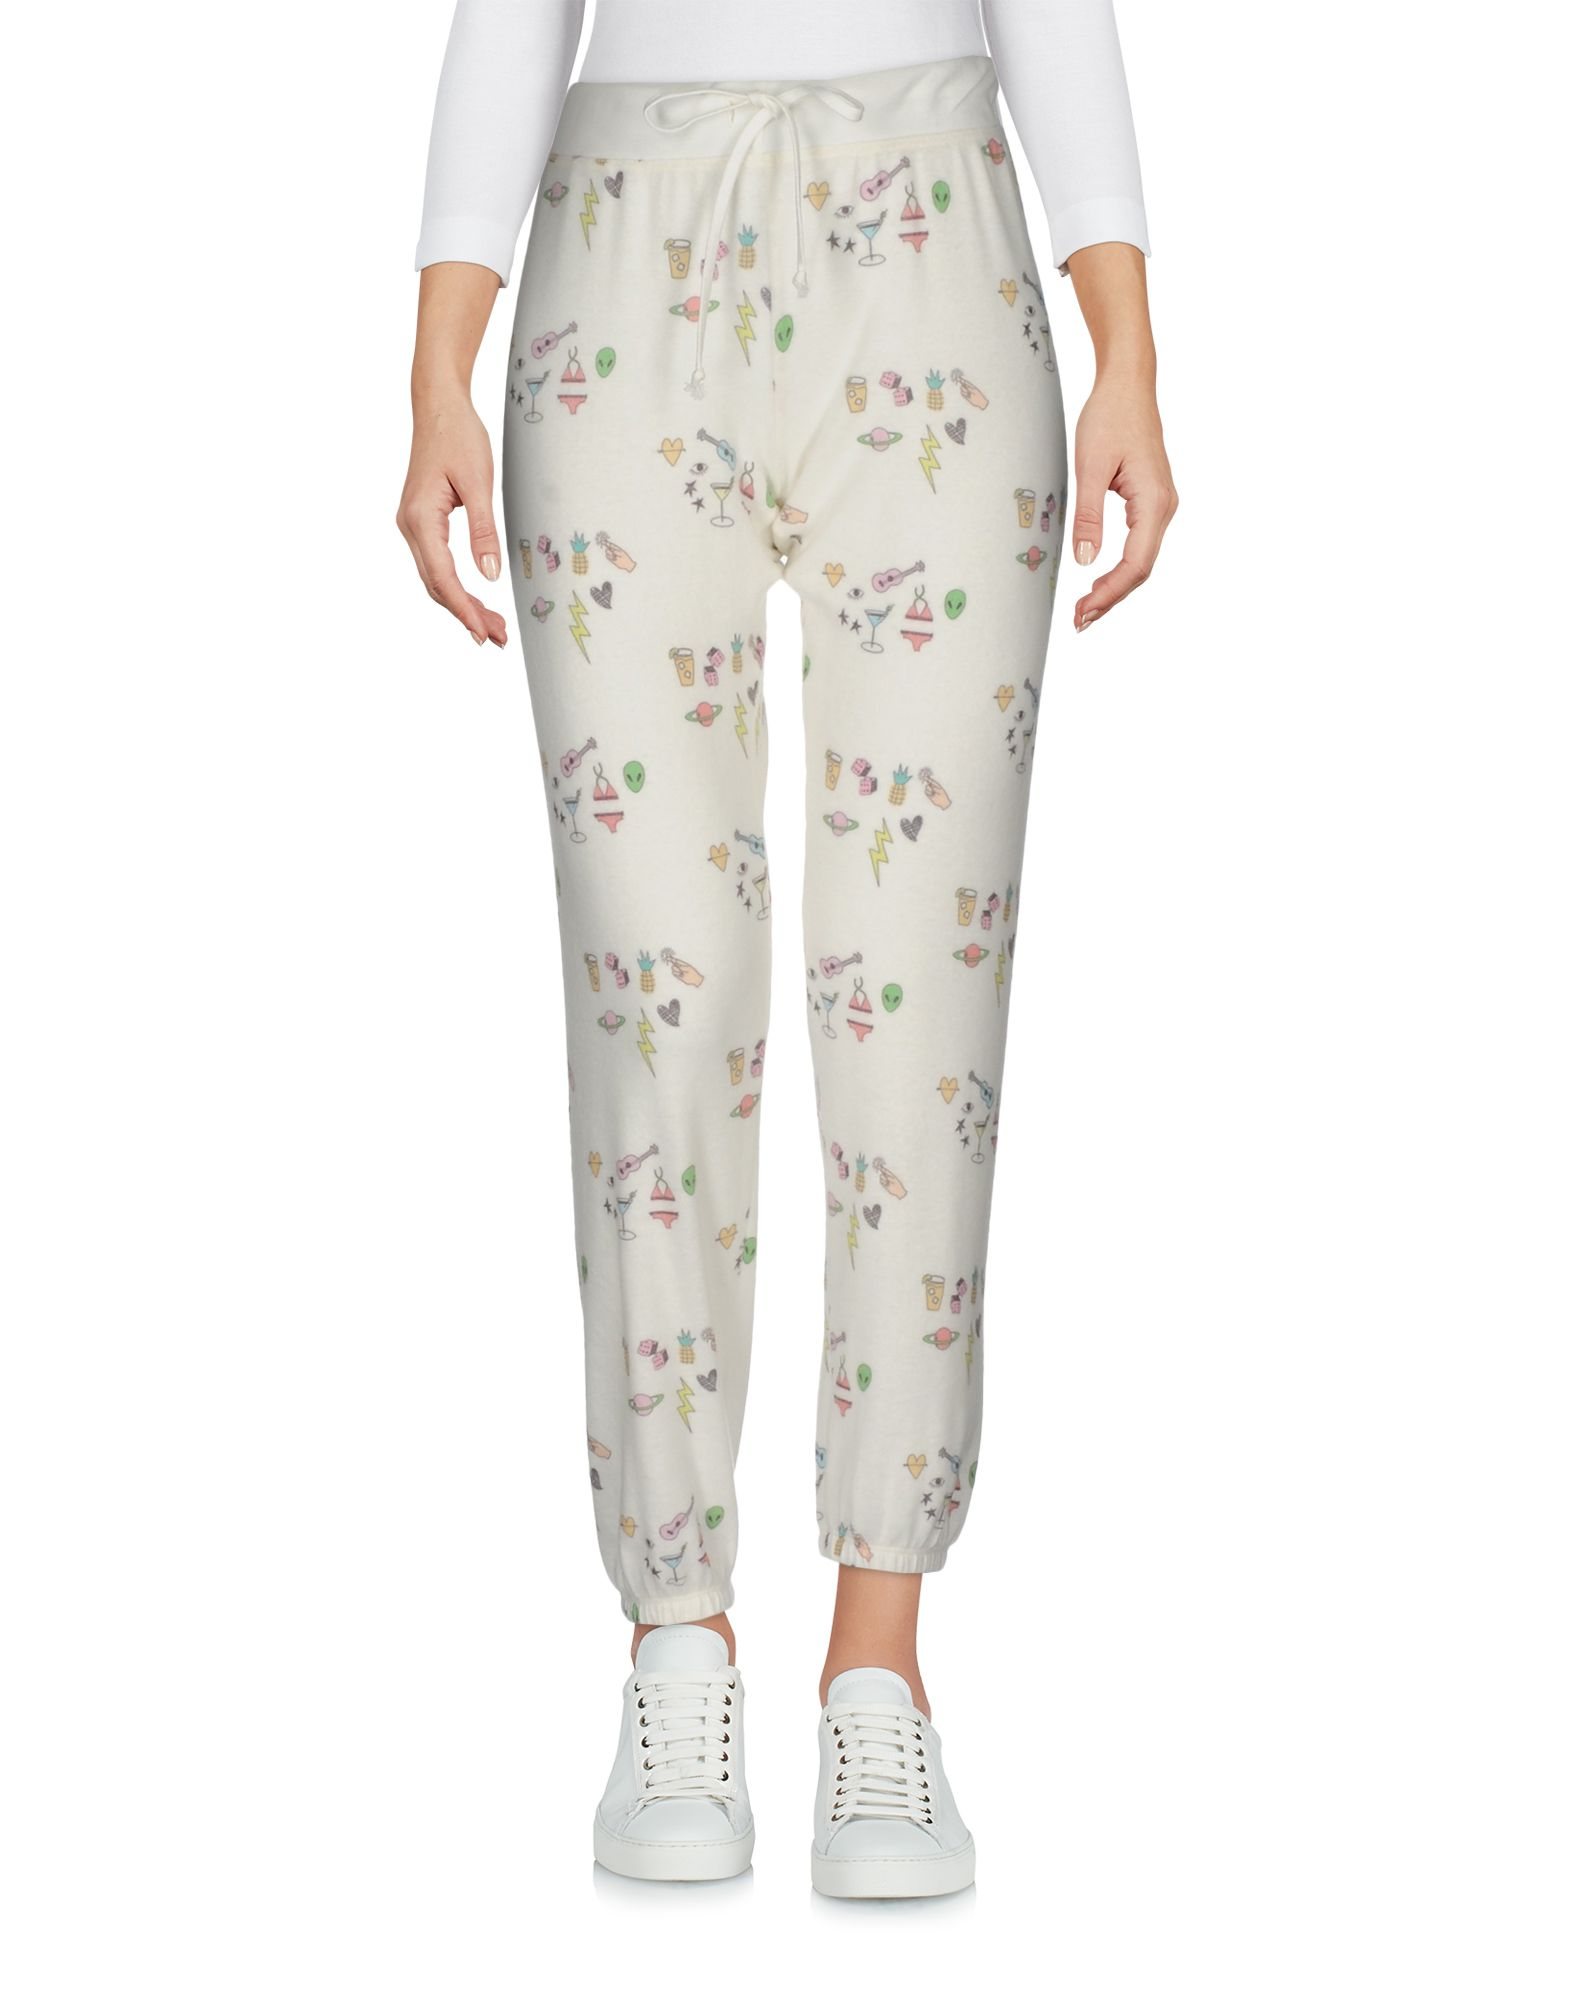 ALL THINGS FABULOUS Casual Pants in White